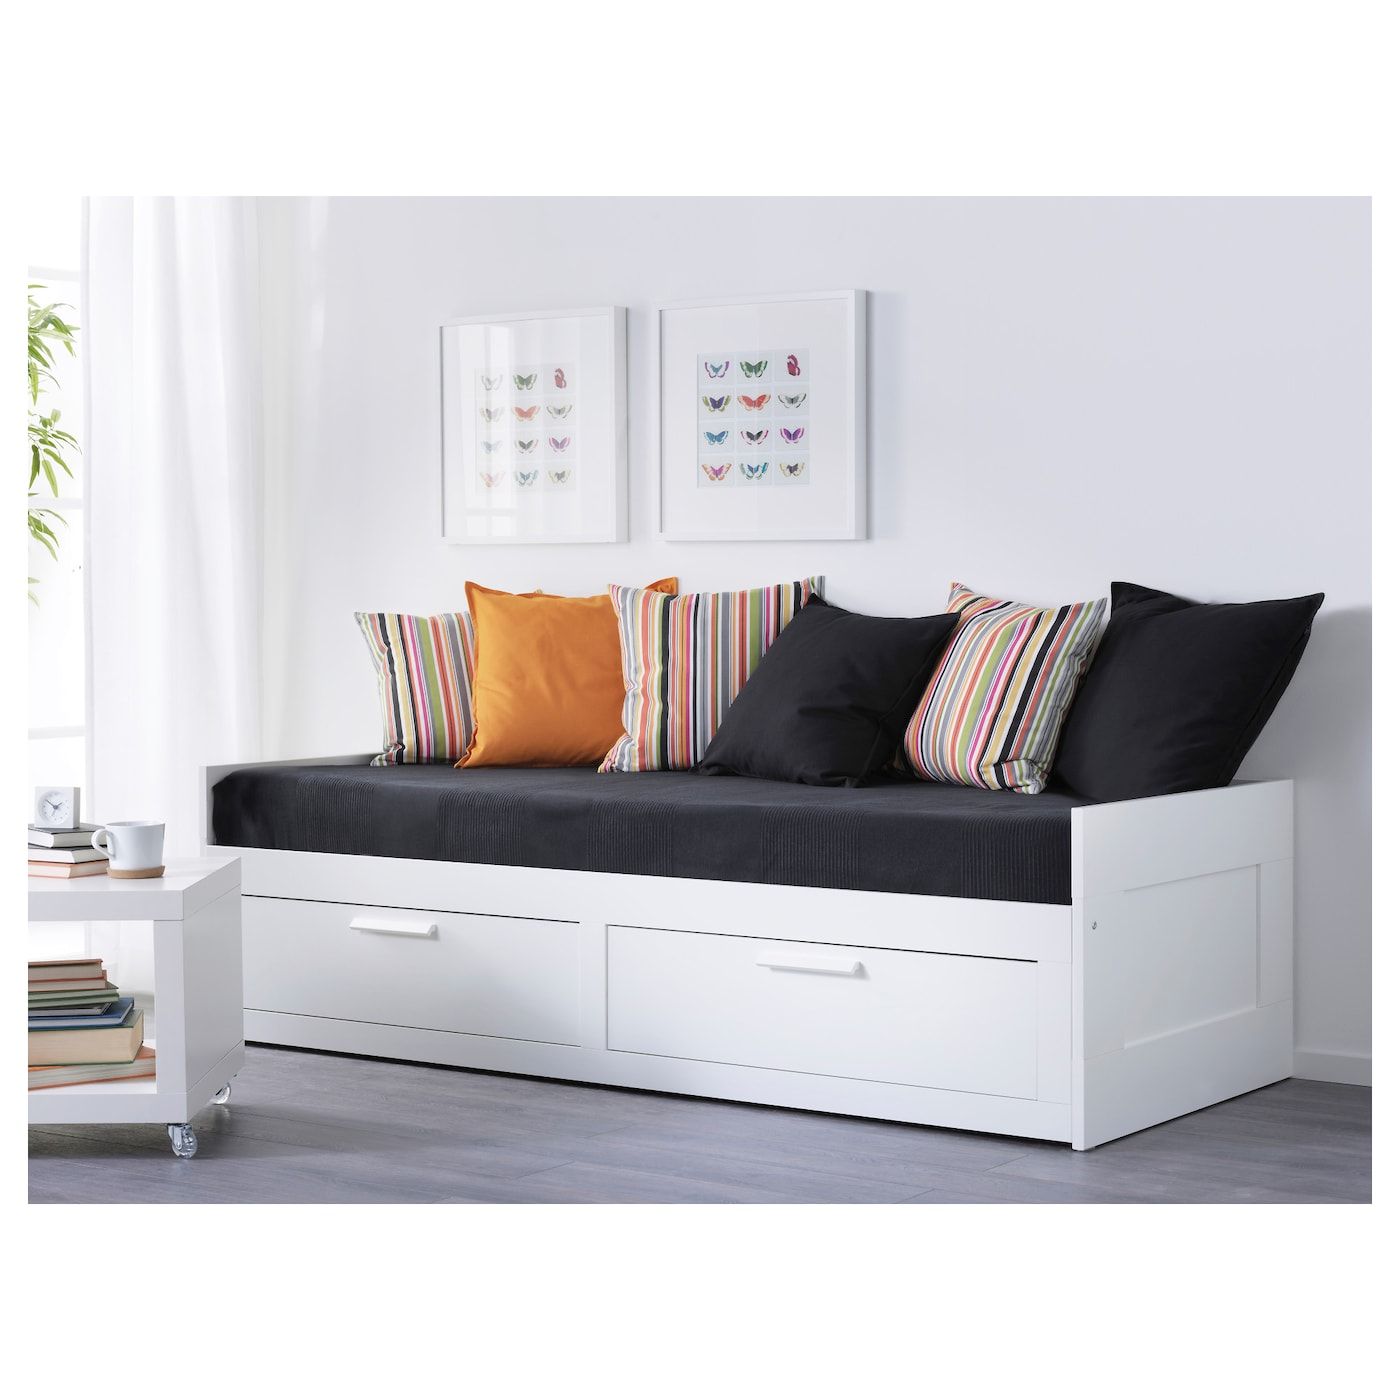 Brimnes day bed w 2 drawers 2 mattresses white moshult for Ikea divan